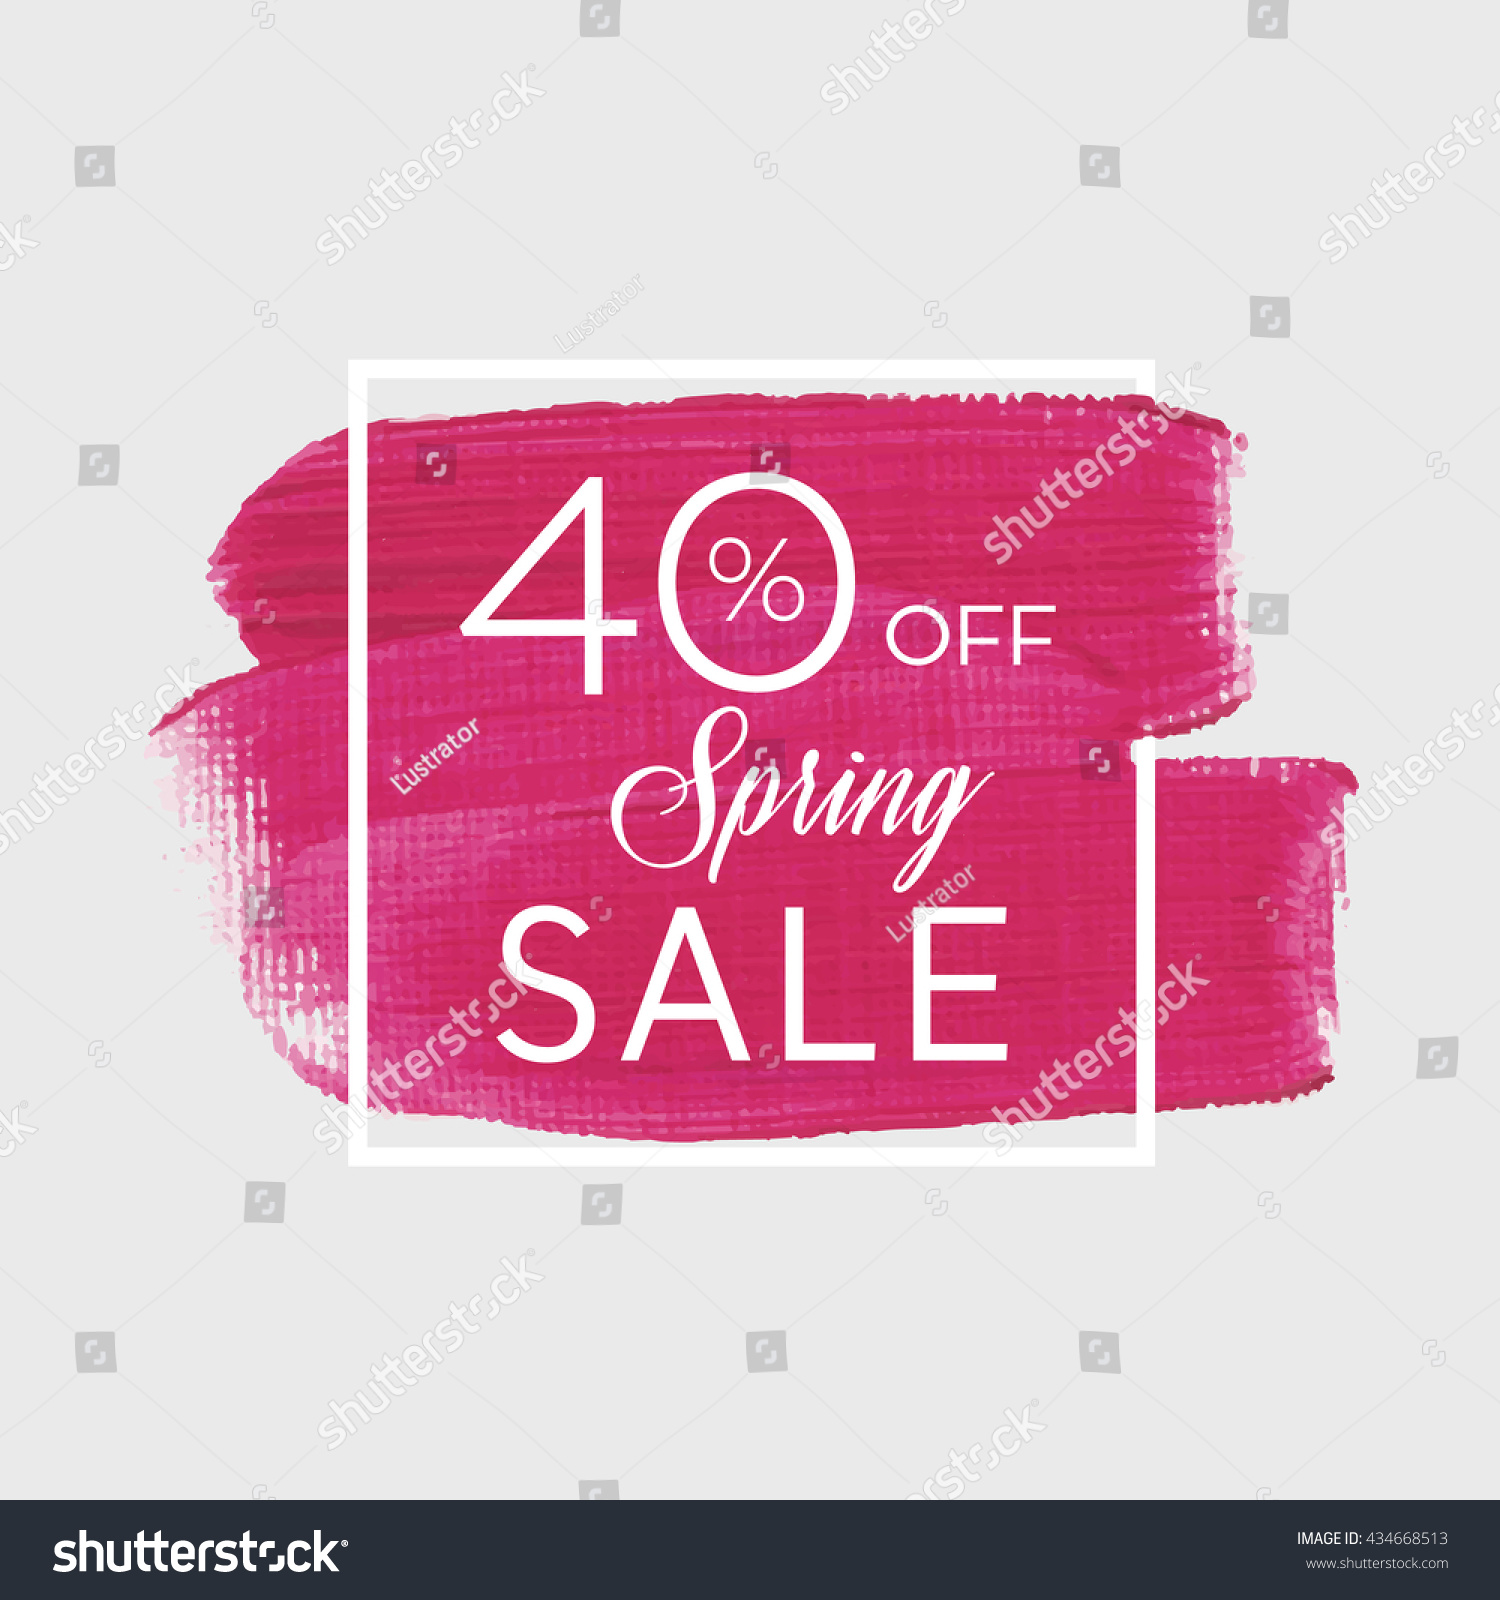 sale season spring sale 40 off stock vector 434668513 shutterstock. Black Bedroom Furniture Sets. Home Design Ideas